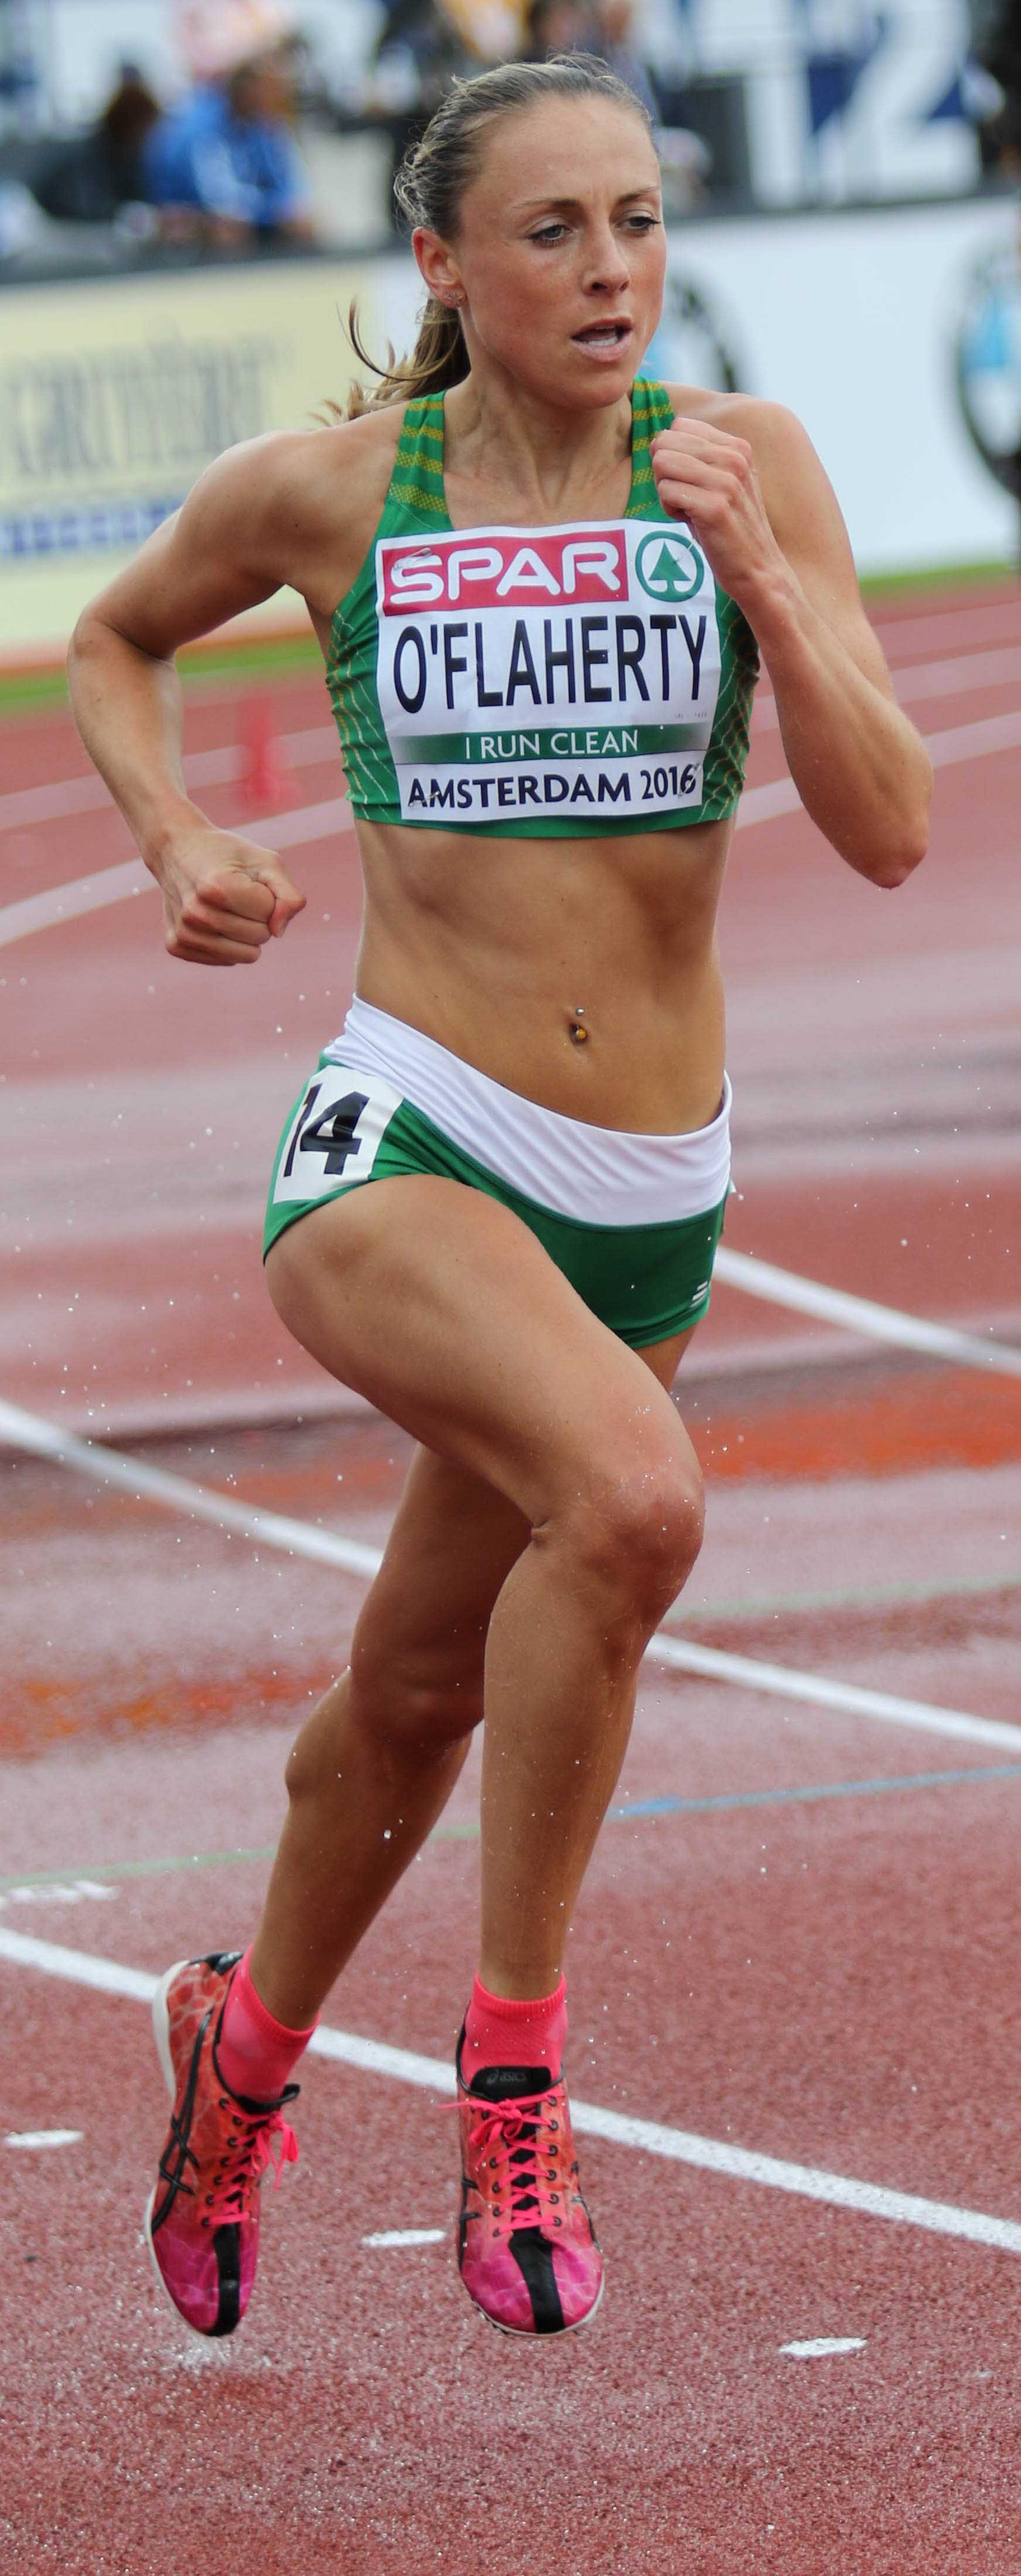 KERRY OFLAHERTY CLAIMS NATIONAL 10K TITLE